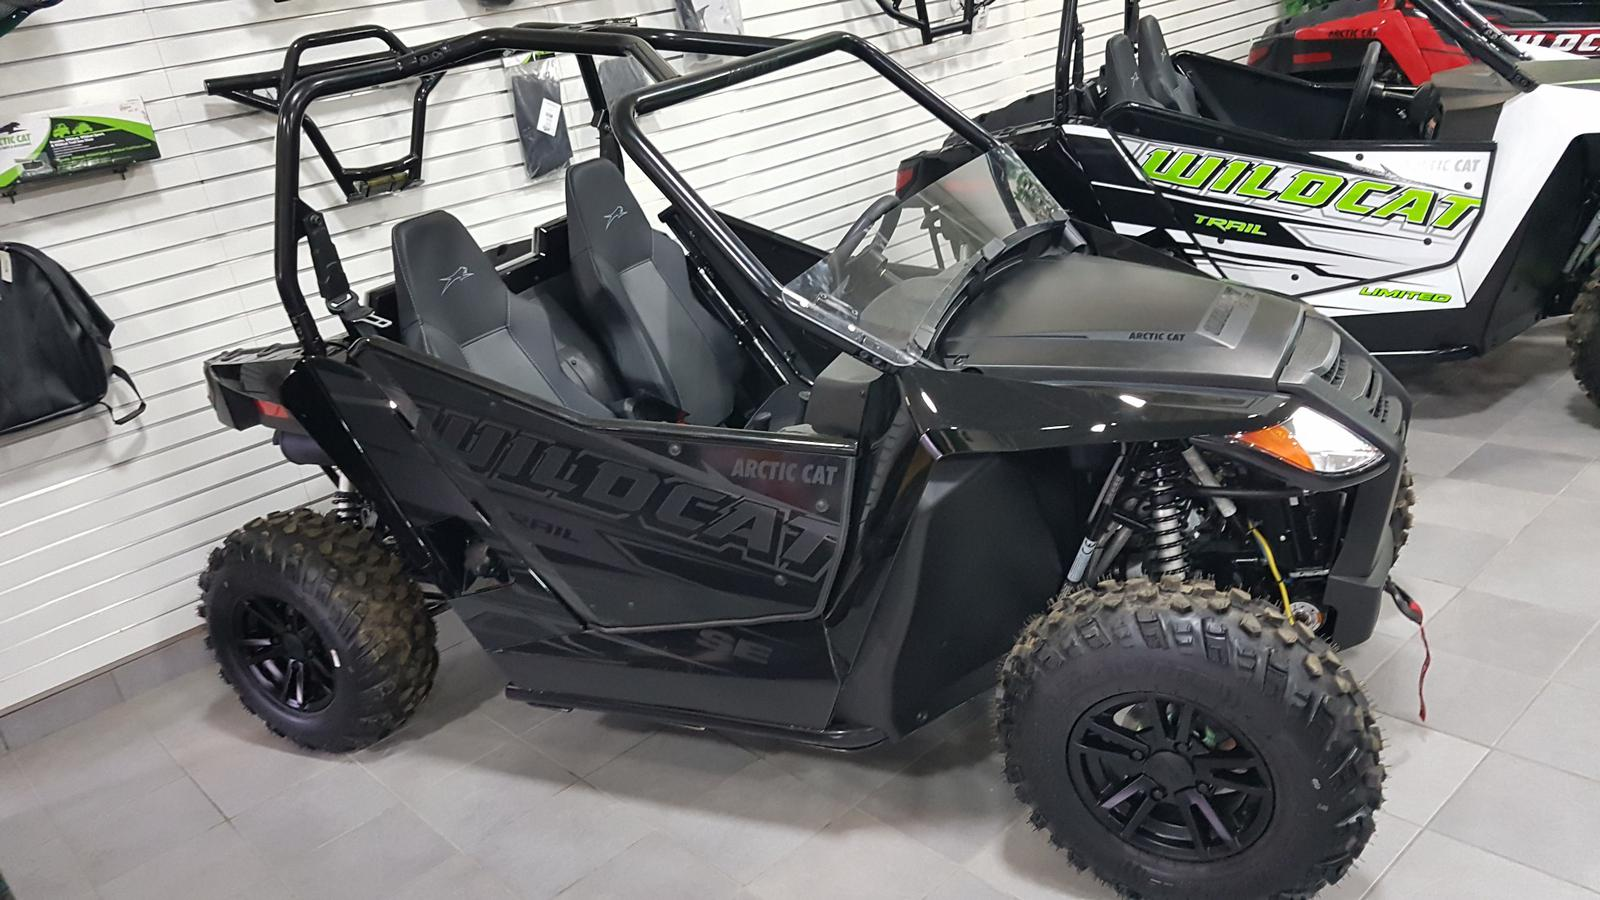 Arctic Cat Wildcat X Limited For Sale